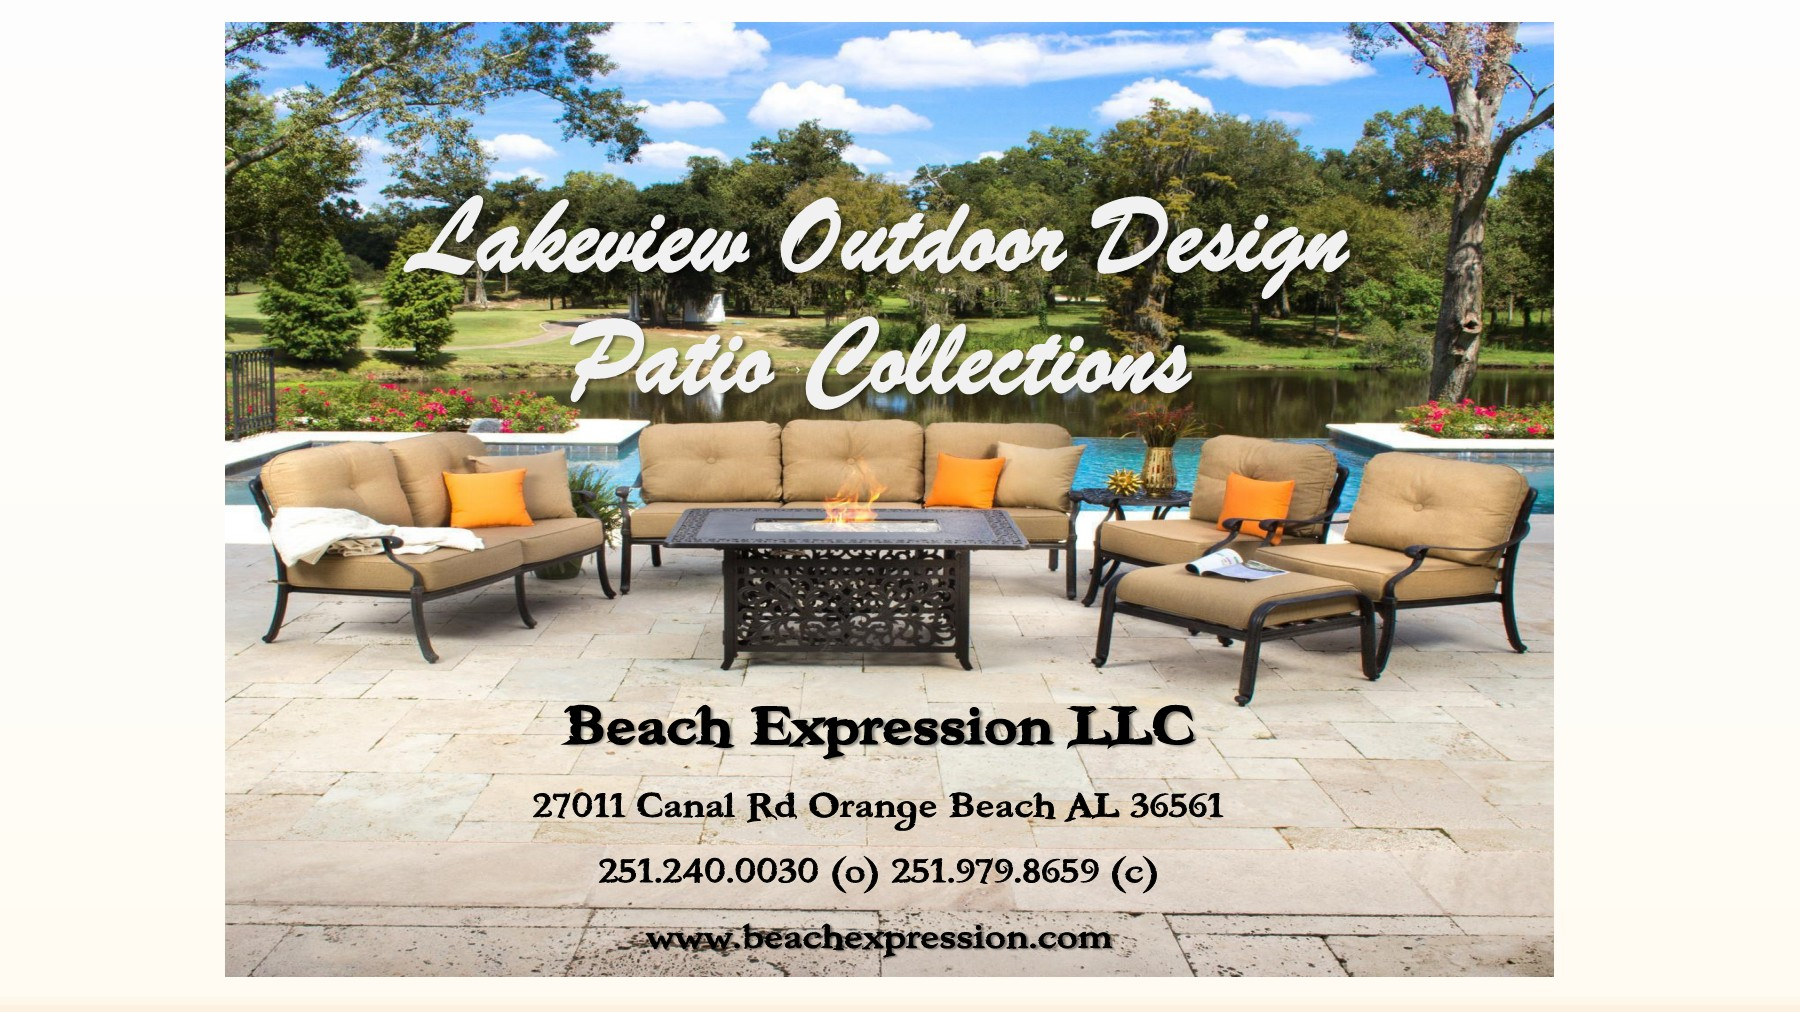 Lakeview Outdoor Design Patio Collections 1